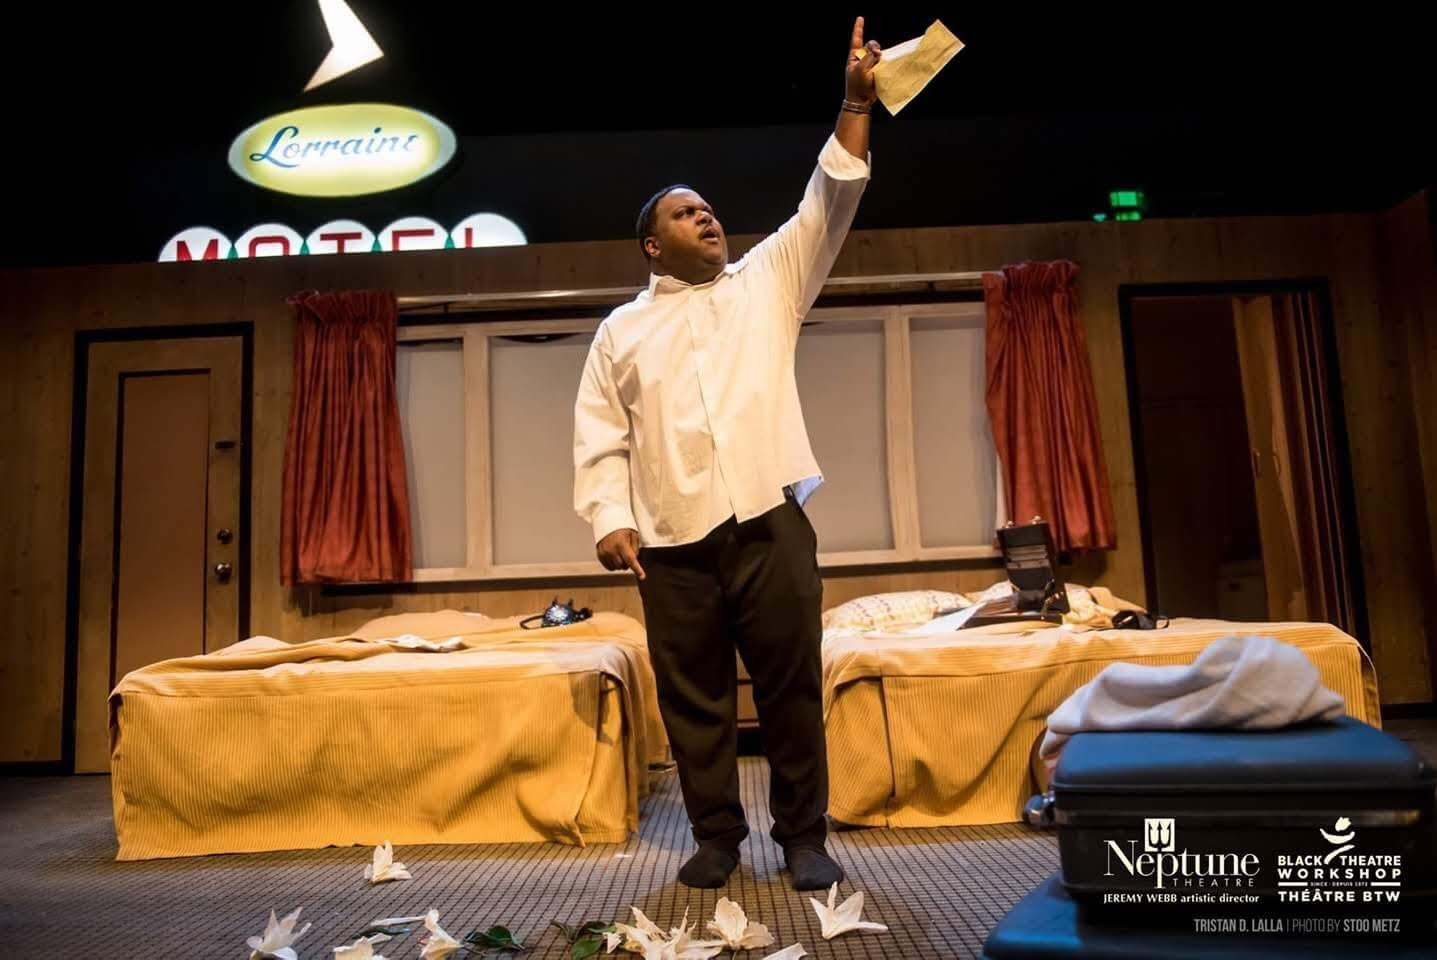 Tristan as Dr. Martin Luther King Jr. in 'The Mountaintop'